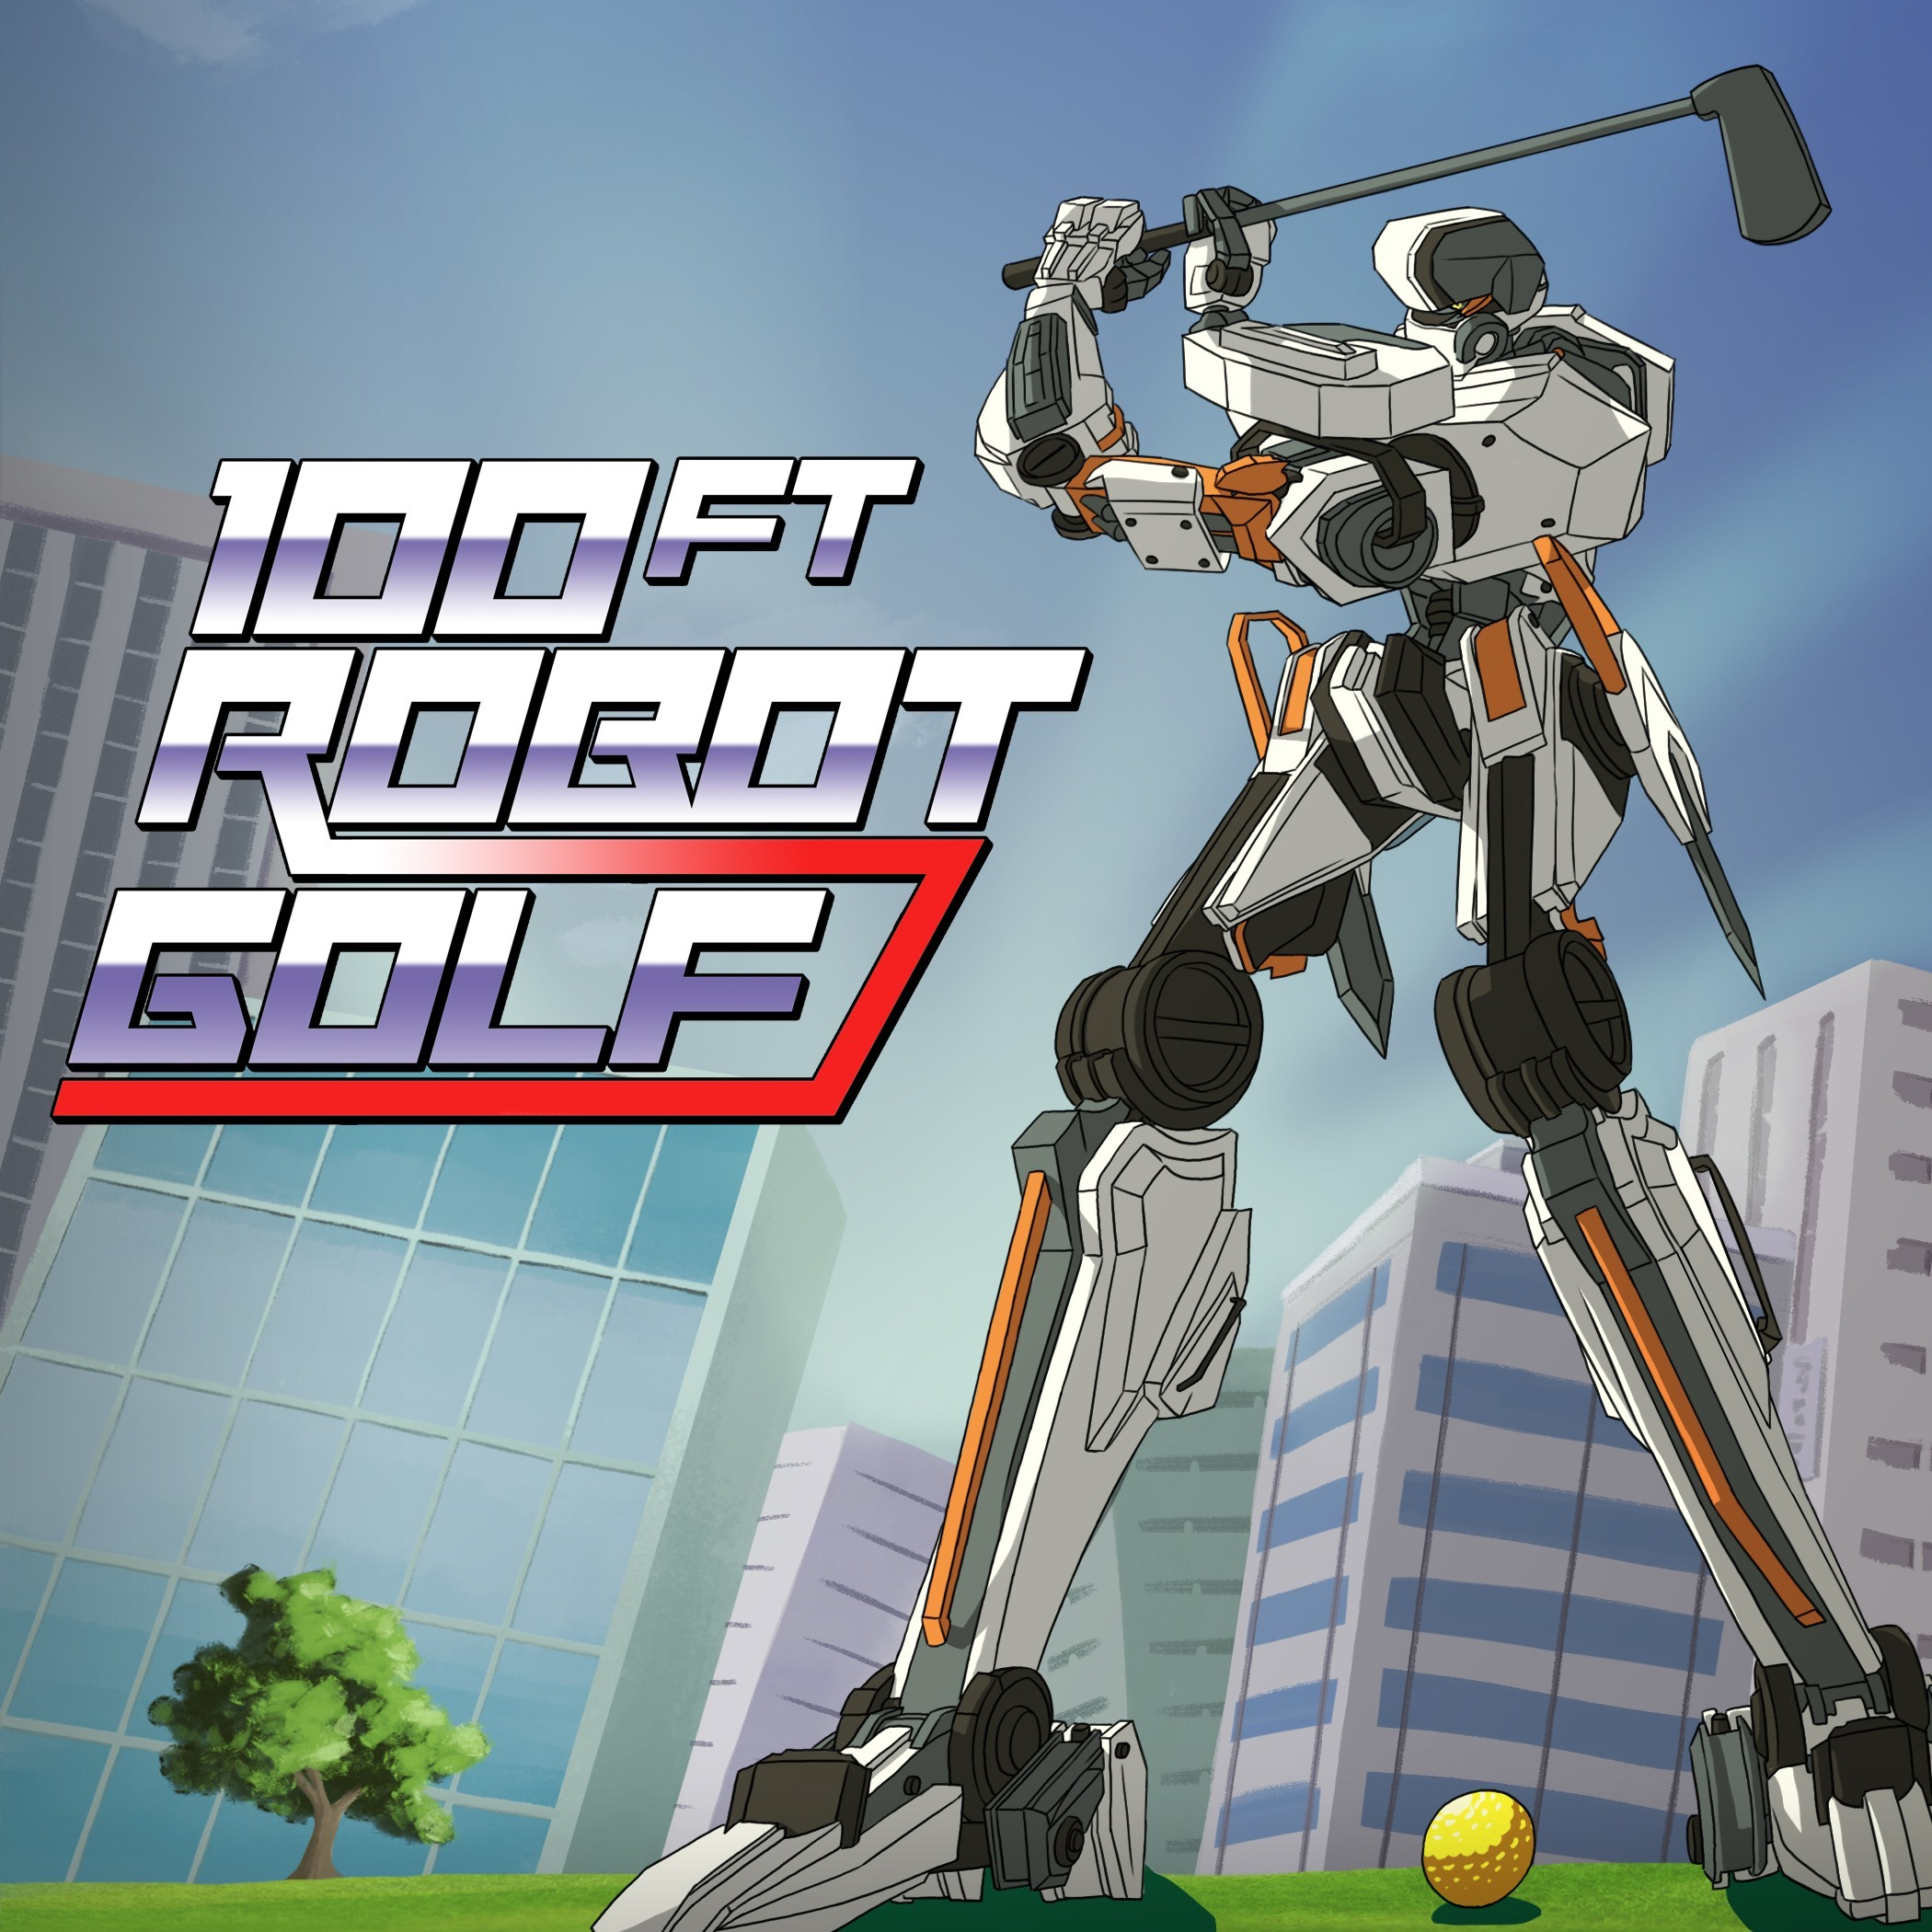 100ft Robot Golf Free Download